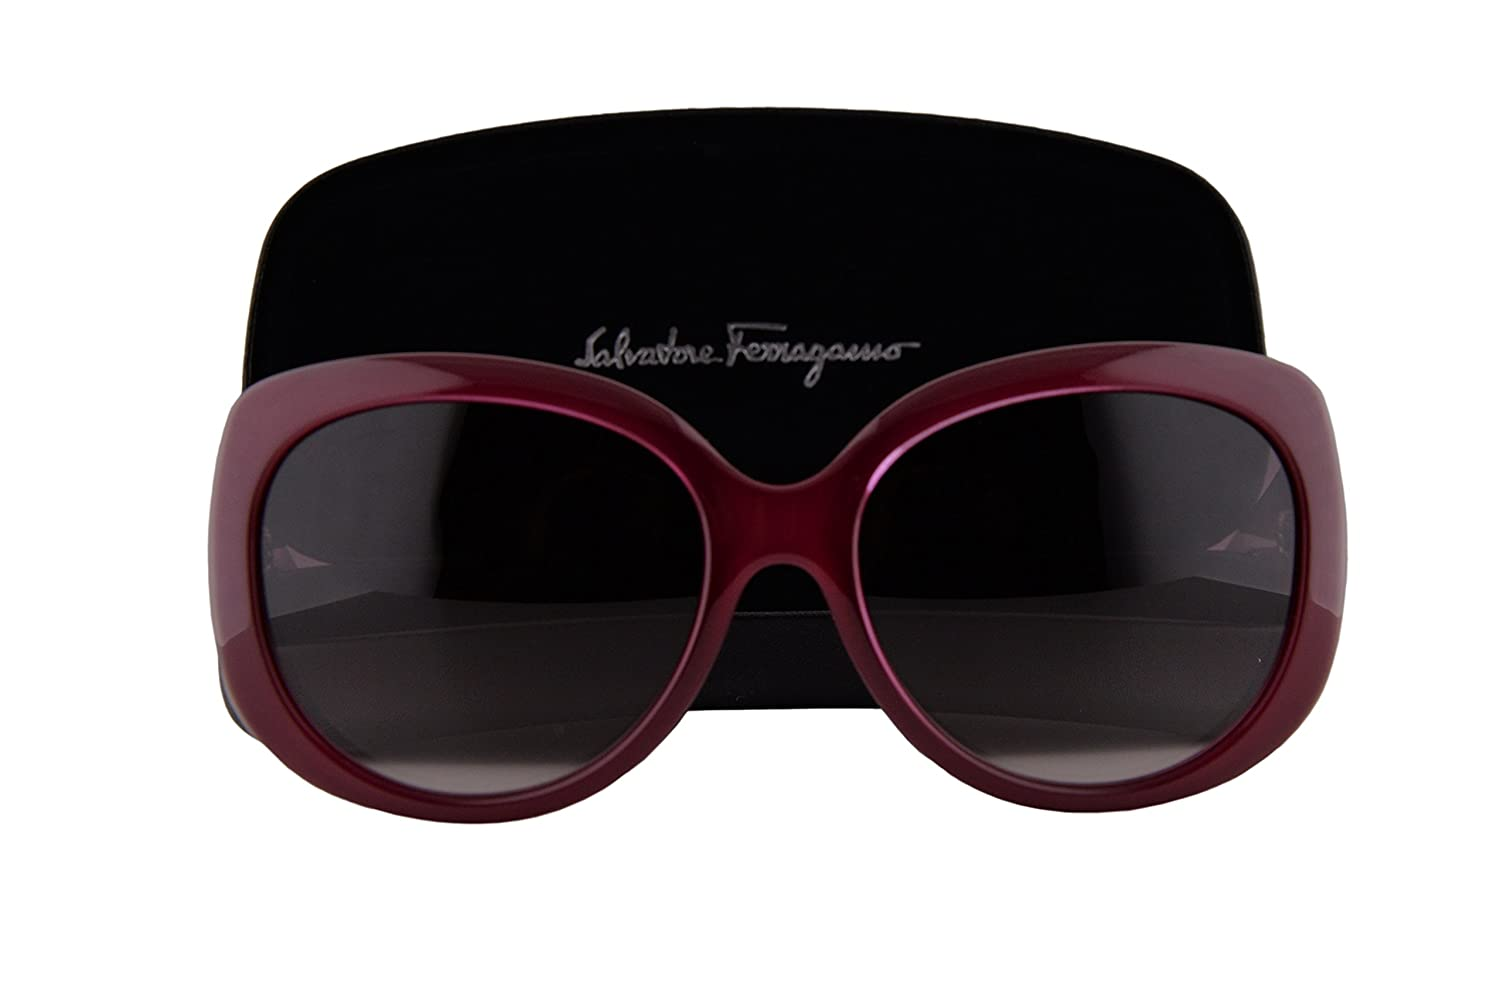 Salvatore Ferragamo SF721S Sunglasses Cherry Red w/Brown Red Gradient Lens 623 SF 721S